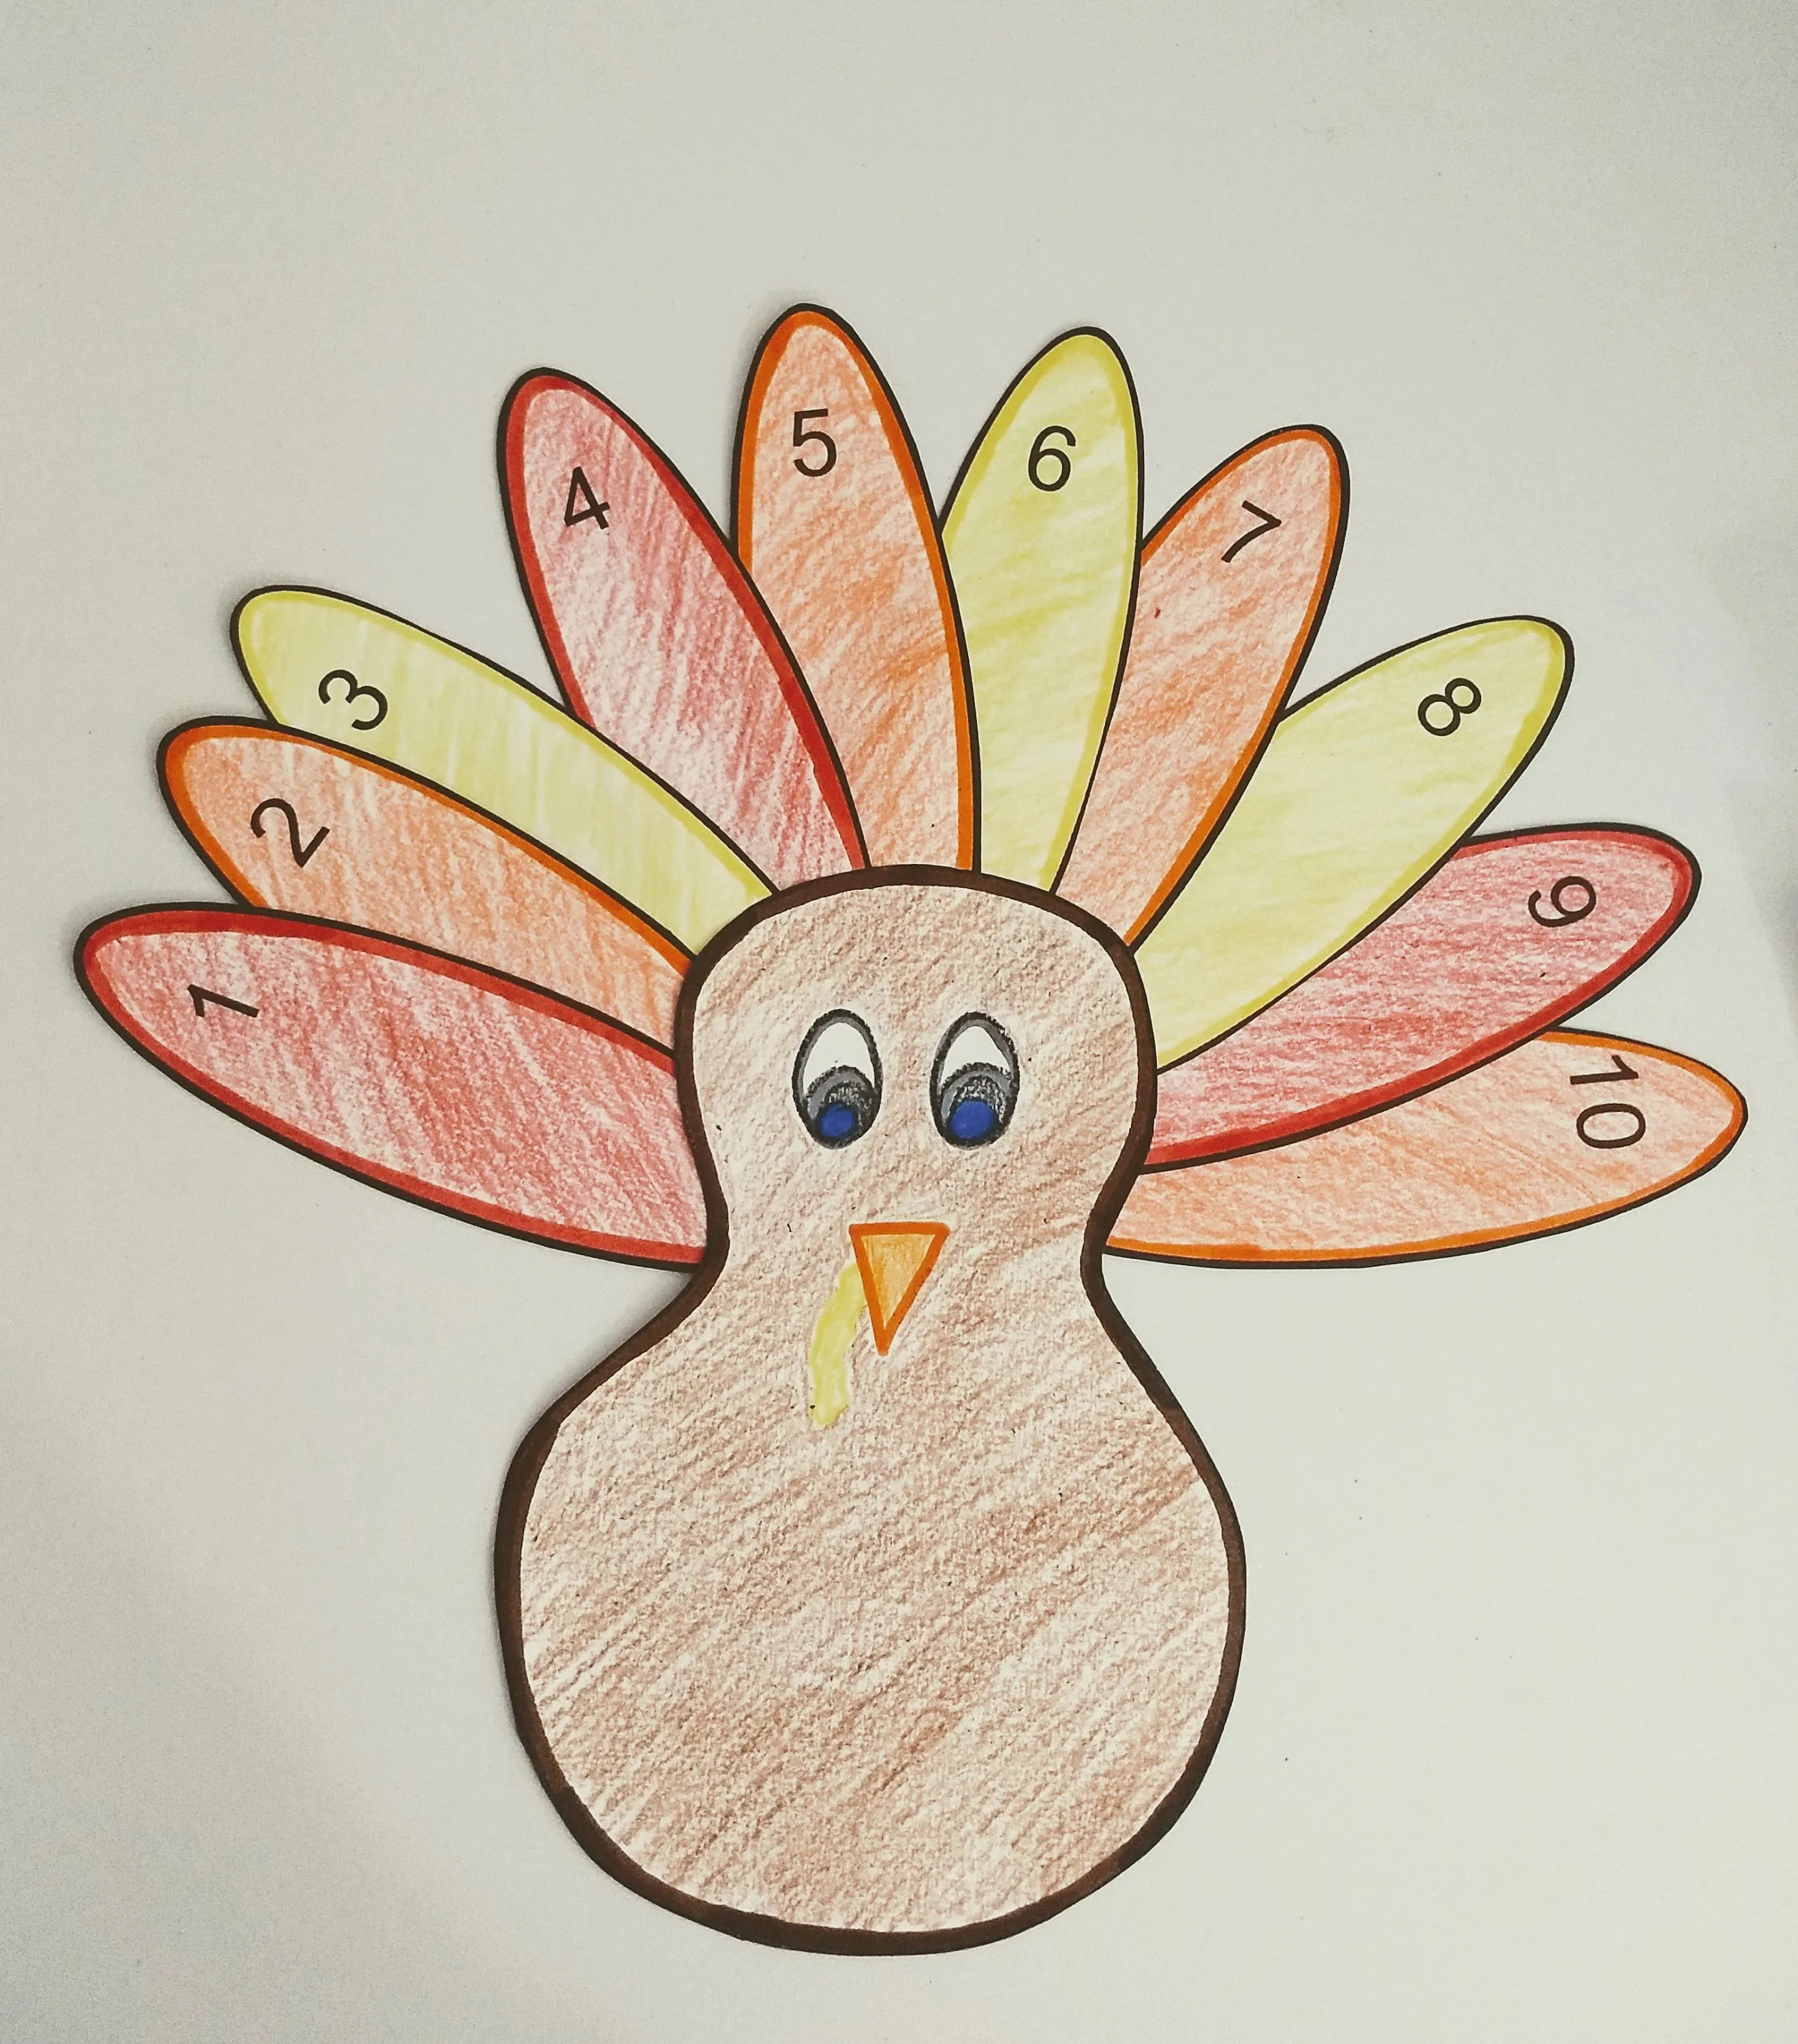 Sequencing Number Turkey